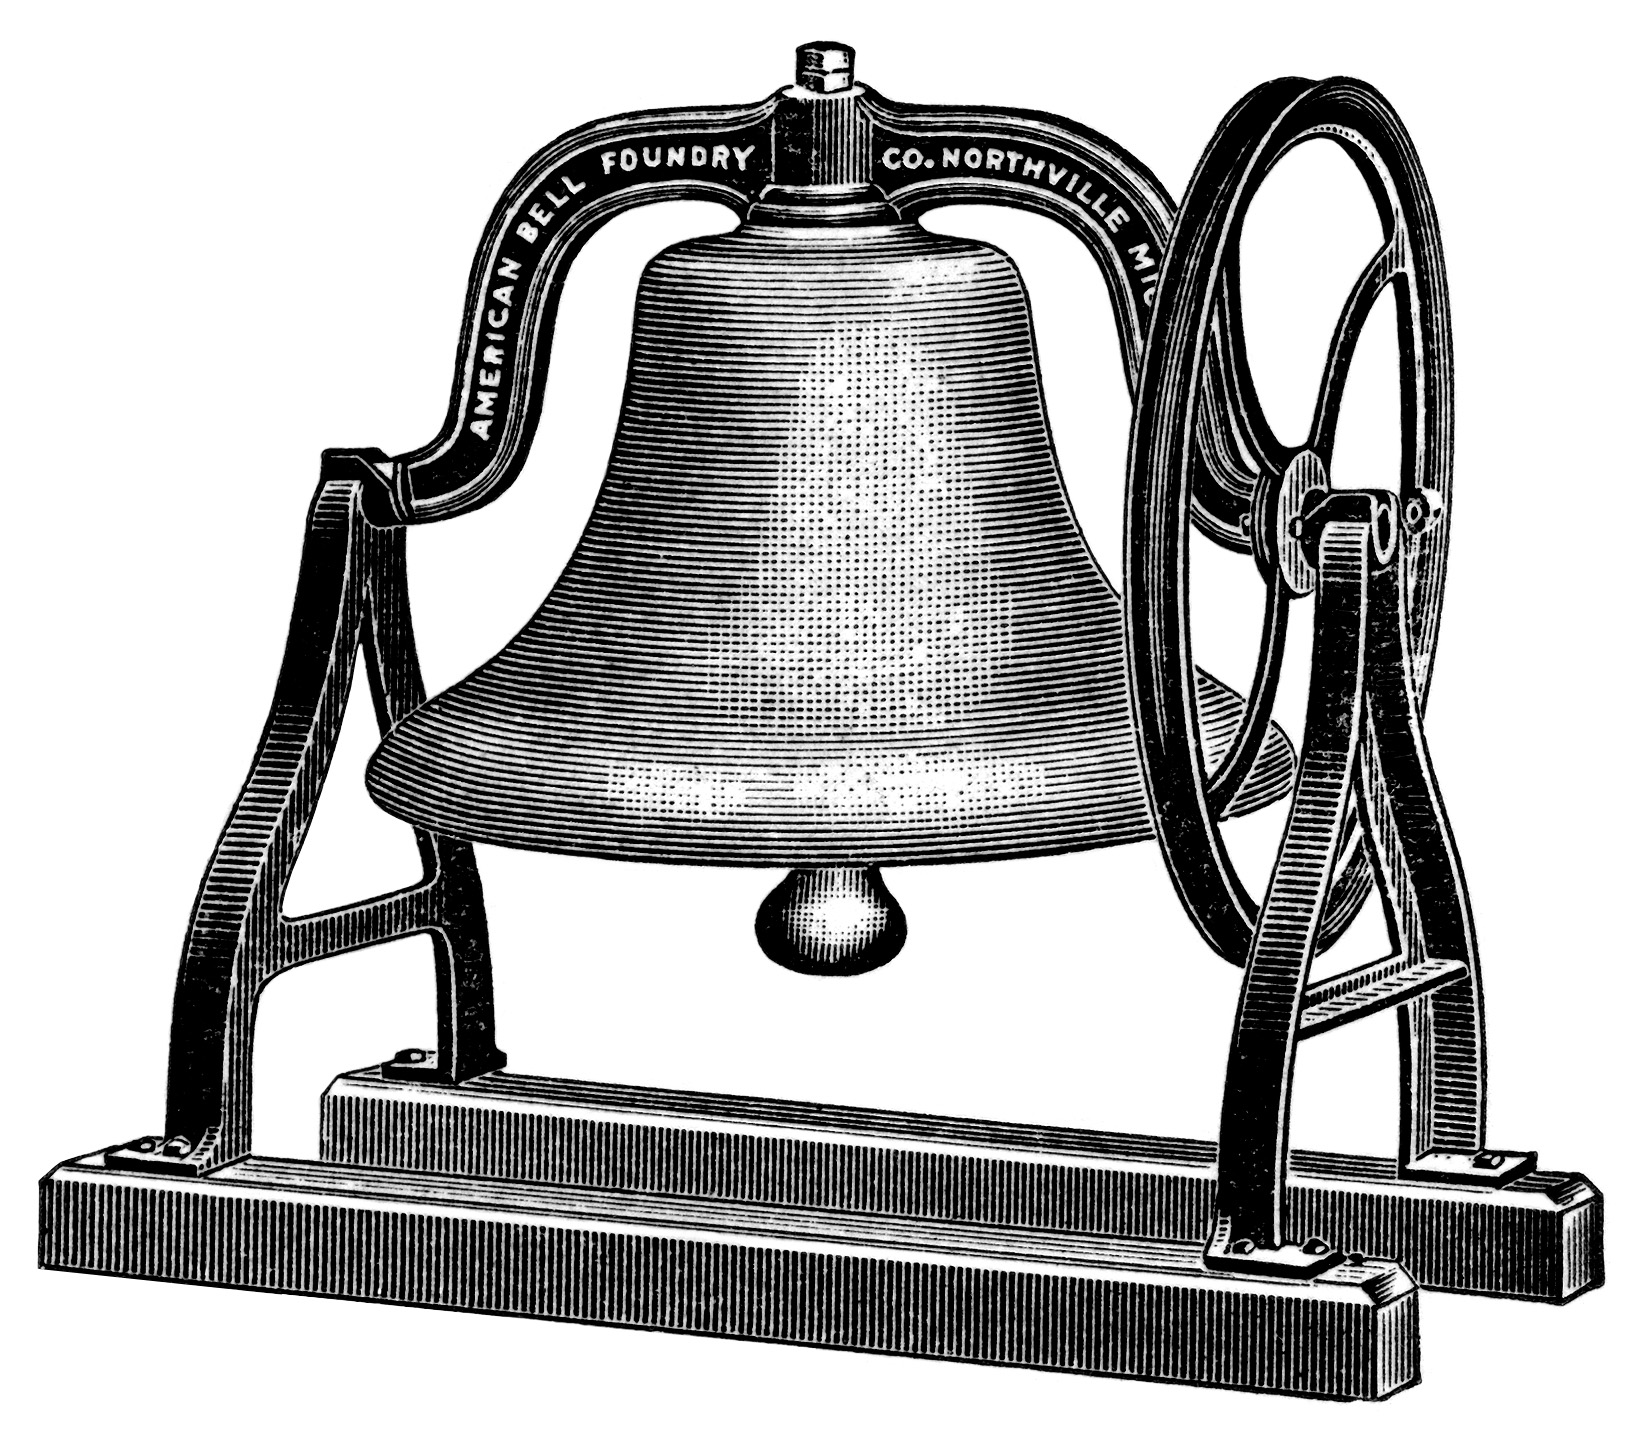 vintage clipart school bell, old school graphics, black and white clip art, antique school bell illustration, free school printable image